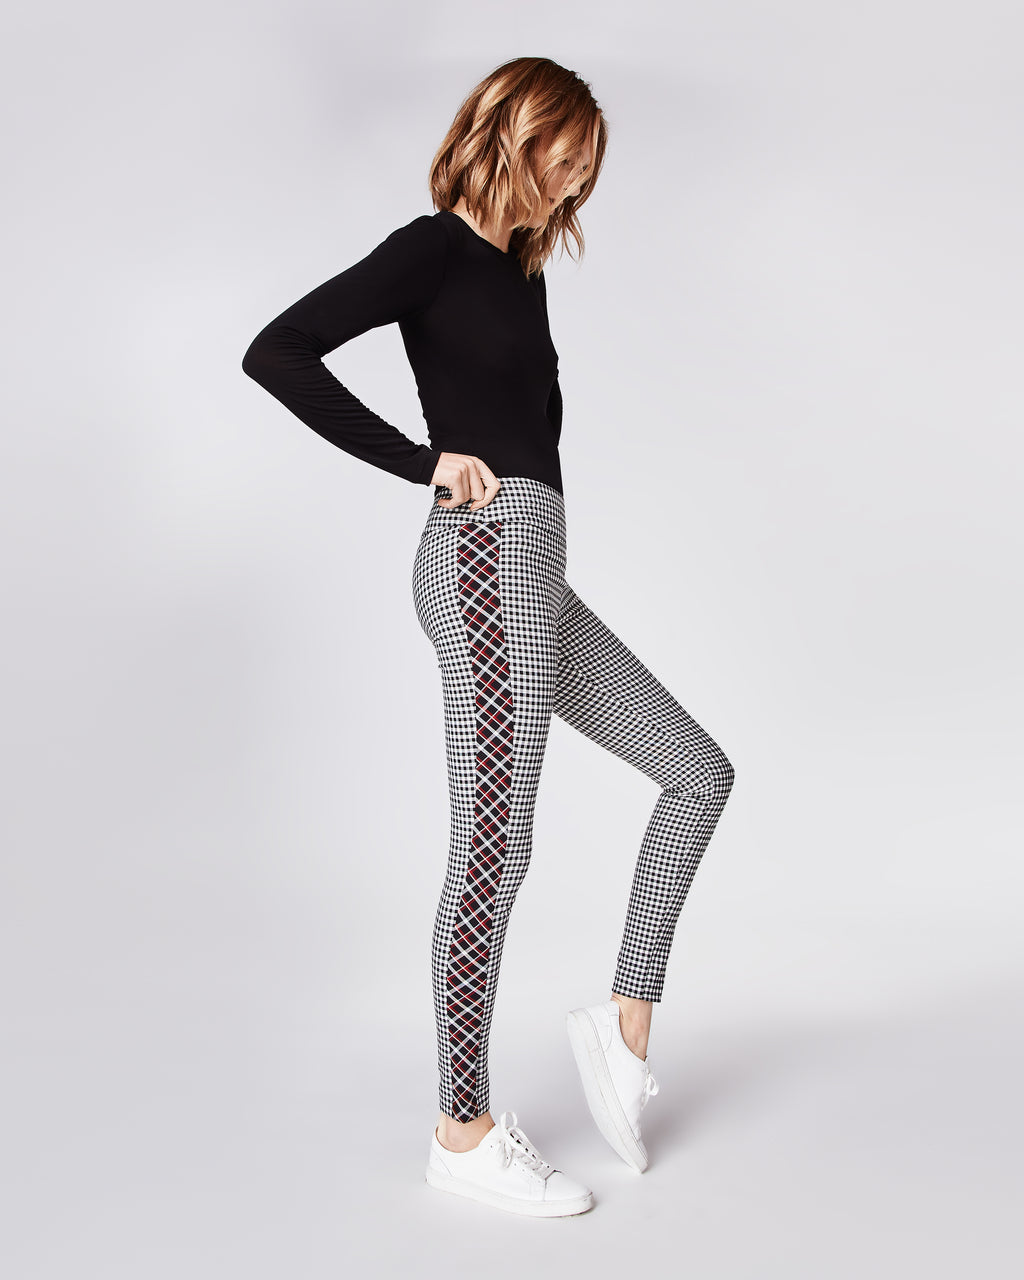 BI10150 - REVERSE PLAID NINA PANT - bottoms - pants - In a black and white plaid, these slim fit pants feature a contrasting strip along the sides. Finished with a concealed zipper for closure and unlined. Pair with the matching Reverse Plaid Top for a fun, mod-inspired look.